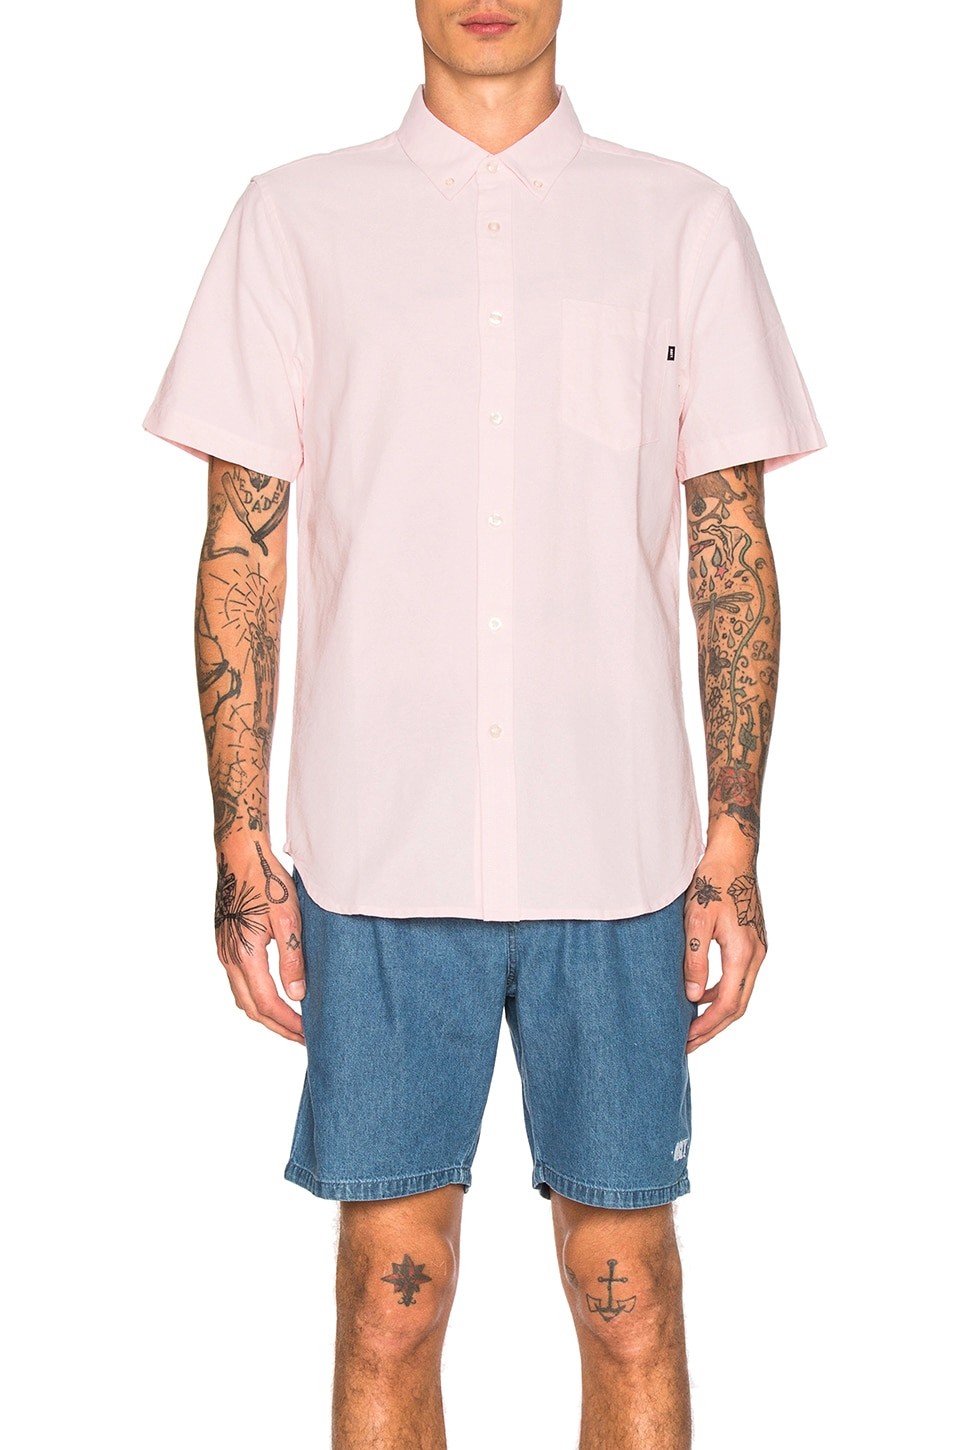 Dissent II S/S Shirt by Obey